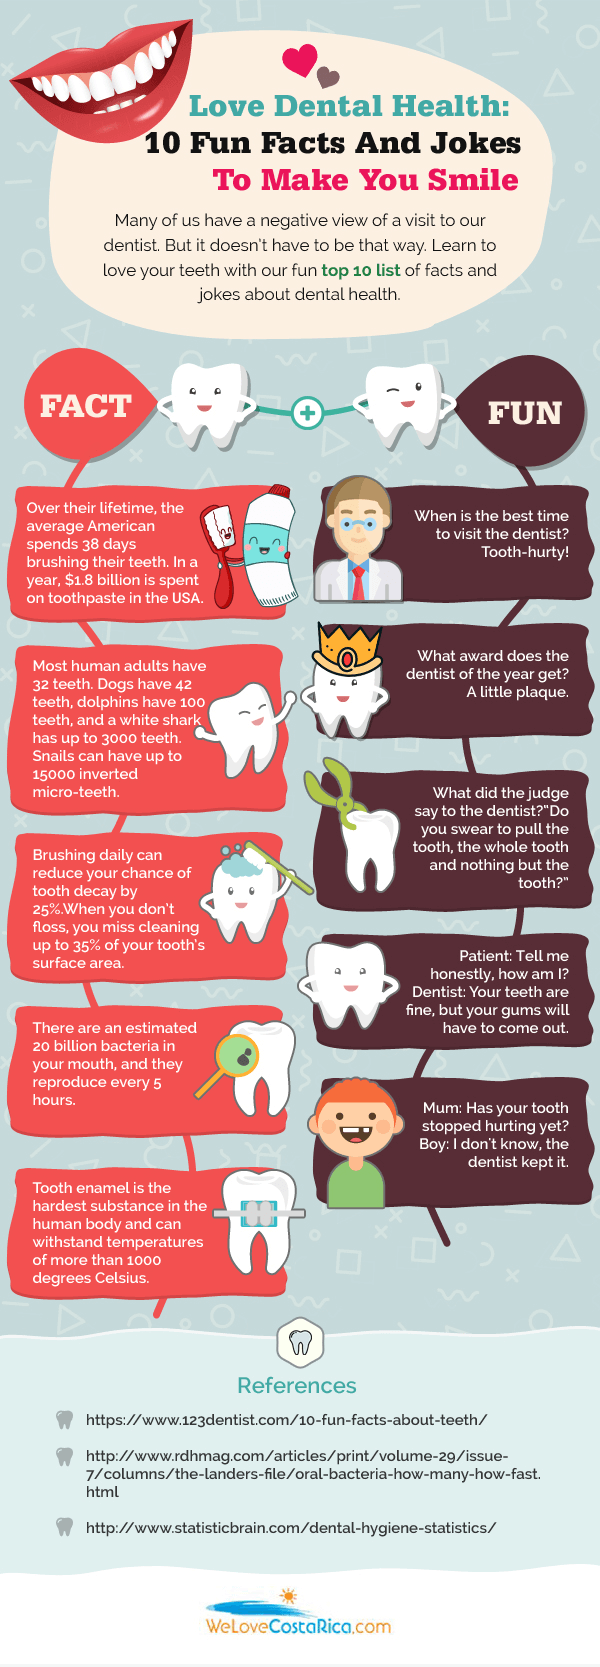 Love Dental Health: 10 Fun Facts And Jokes To Make You Smile